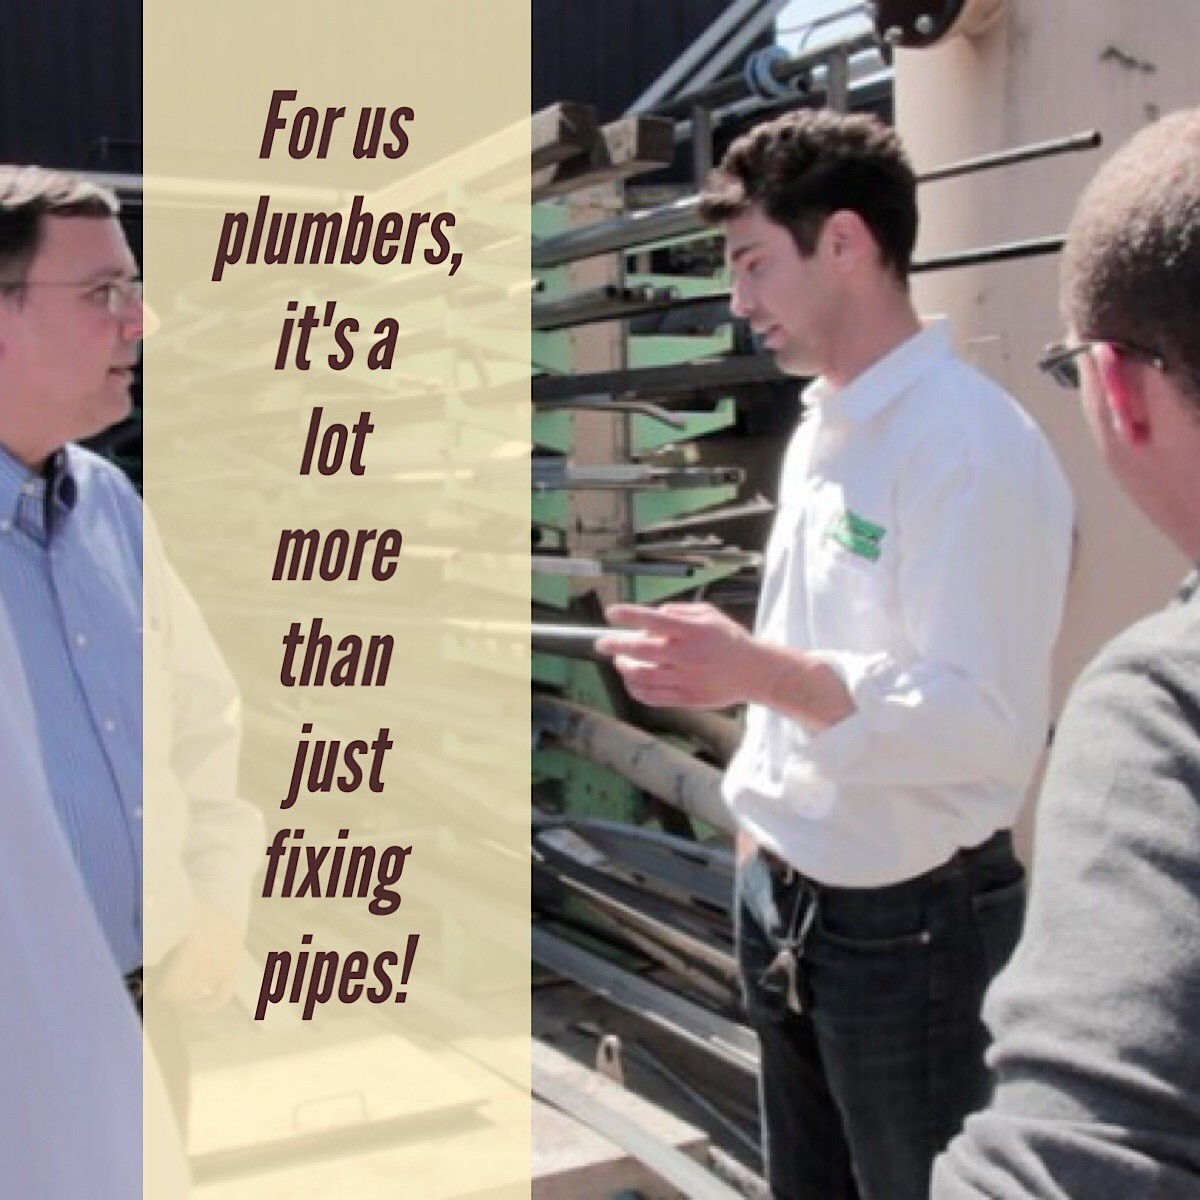 For Us Plumbers, It's a Lot More Than Just Fixing Pipes